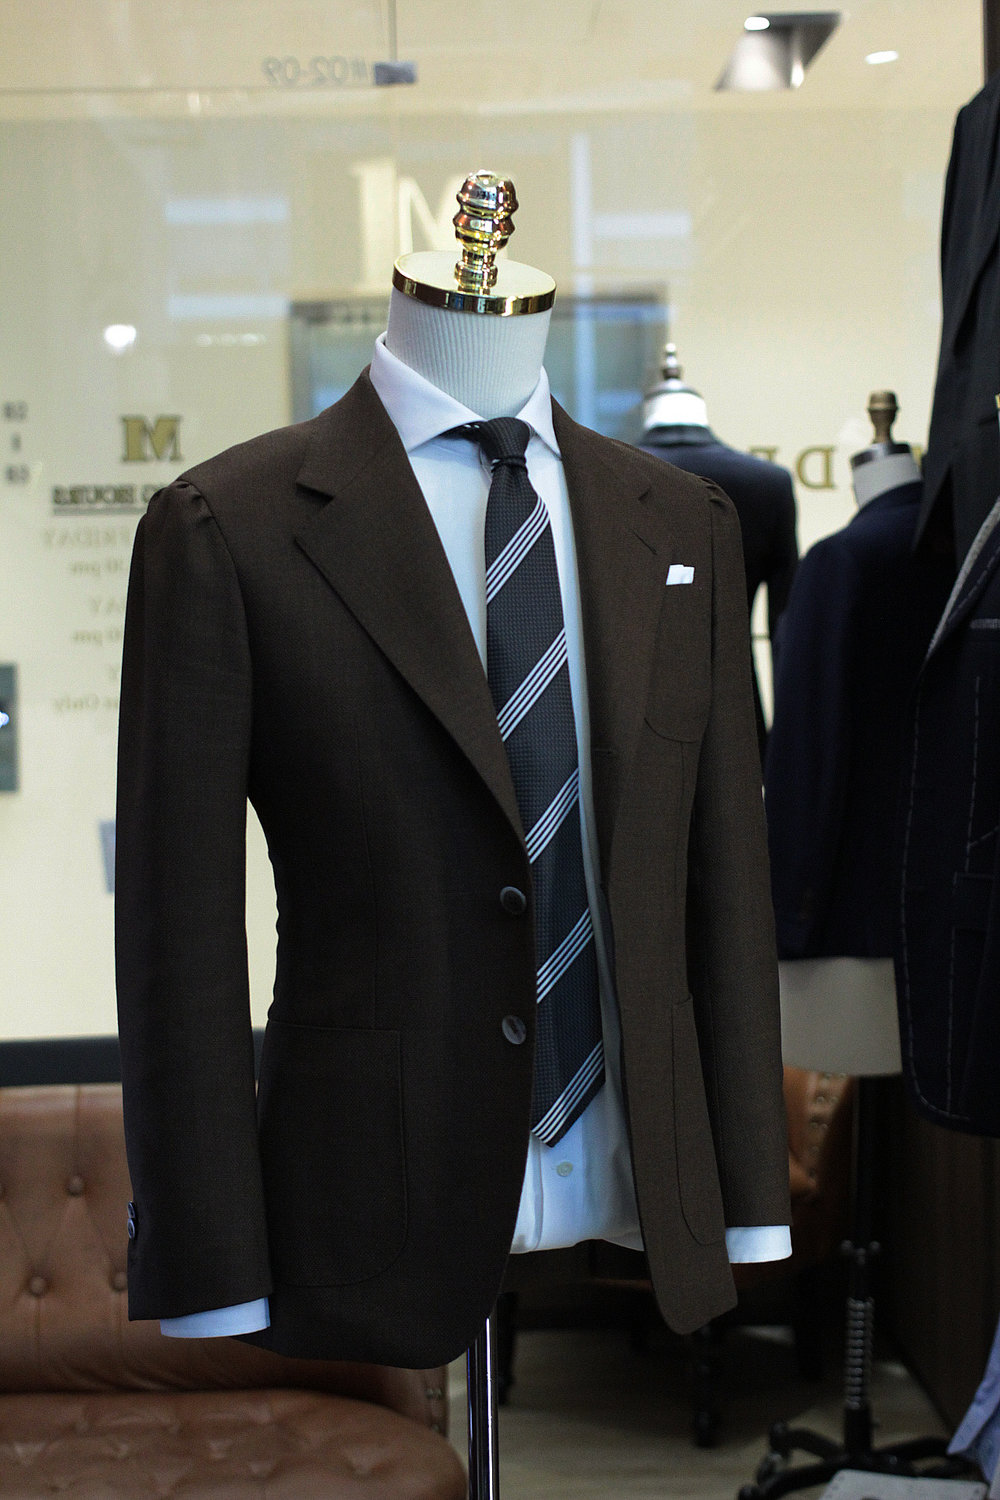 Made Suits HTC Brown by FIESTA Holland & Sherry Hopsack side view.JPG